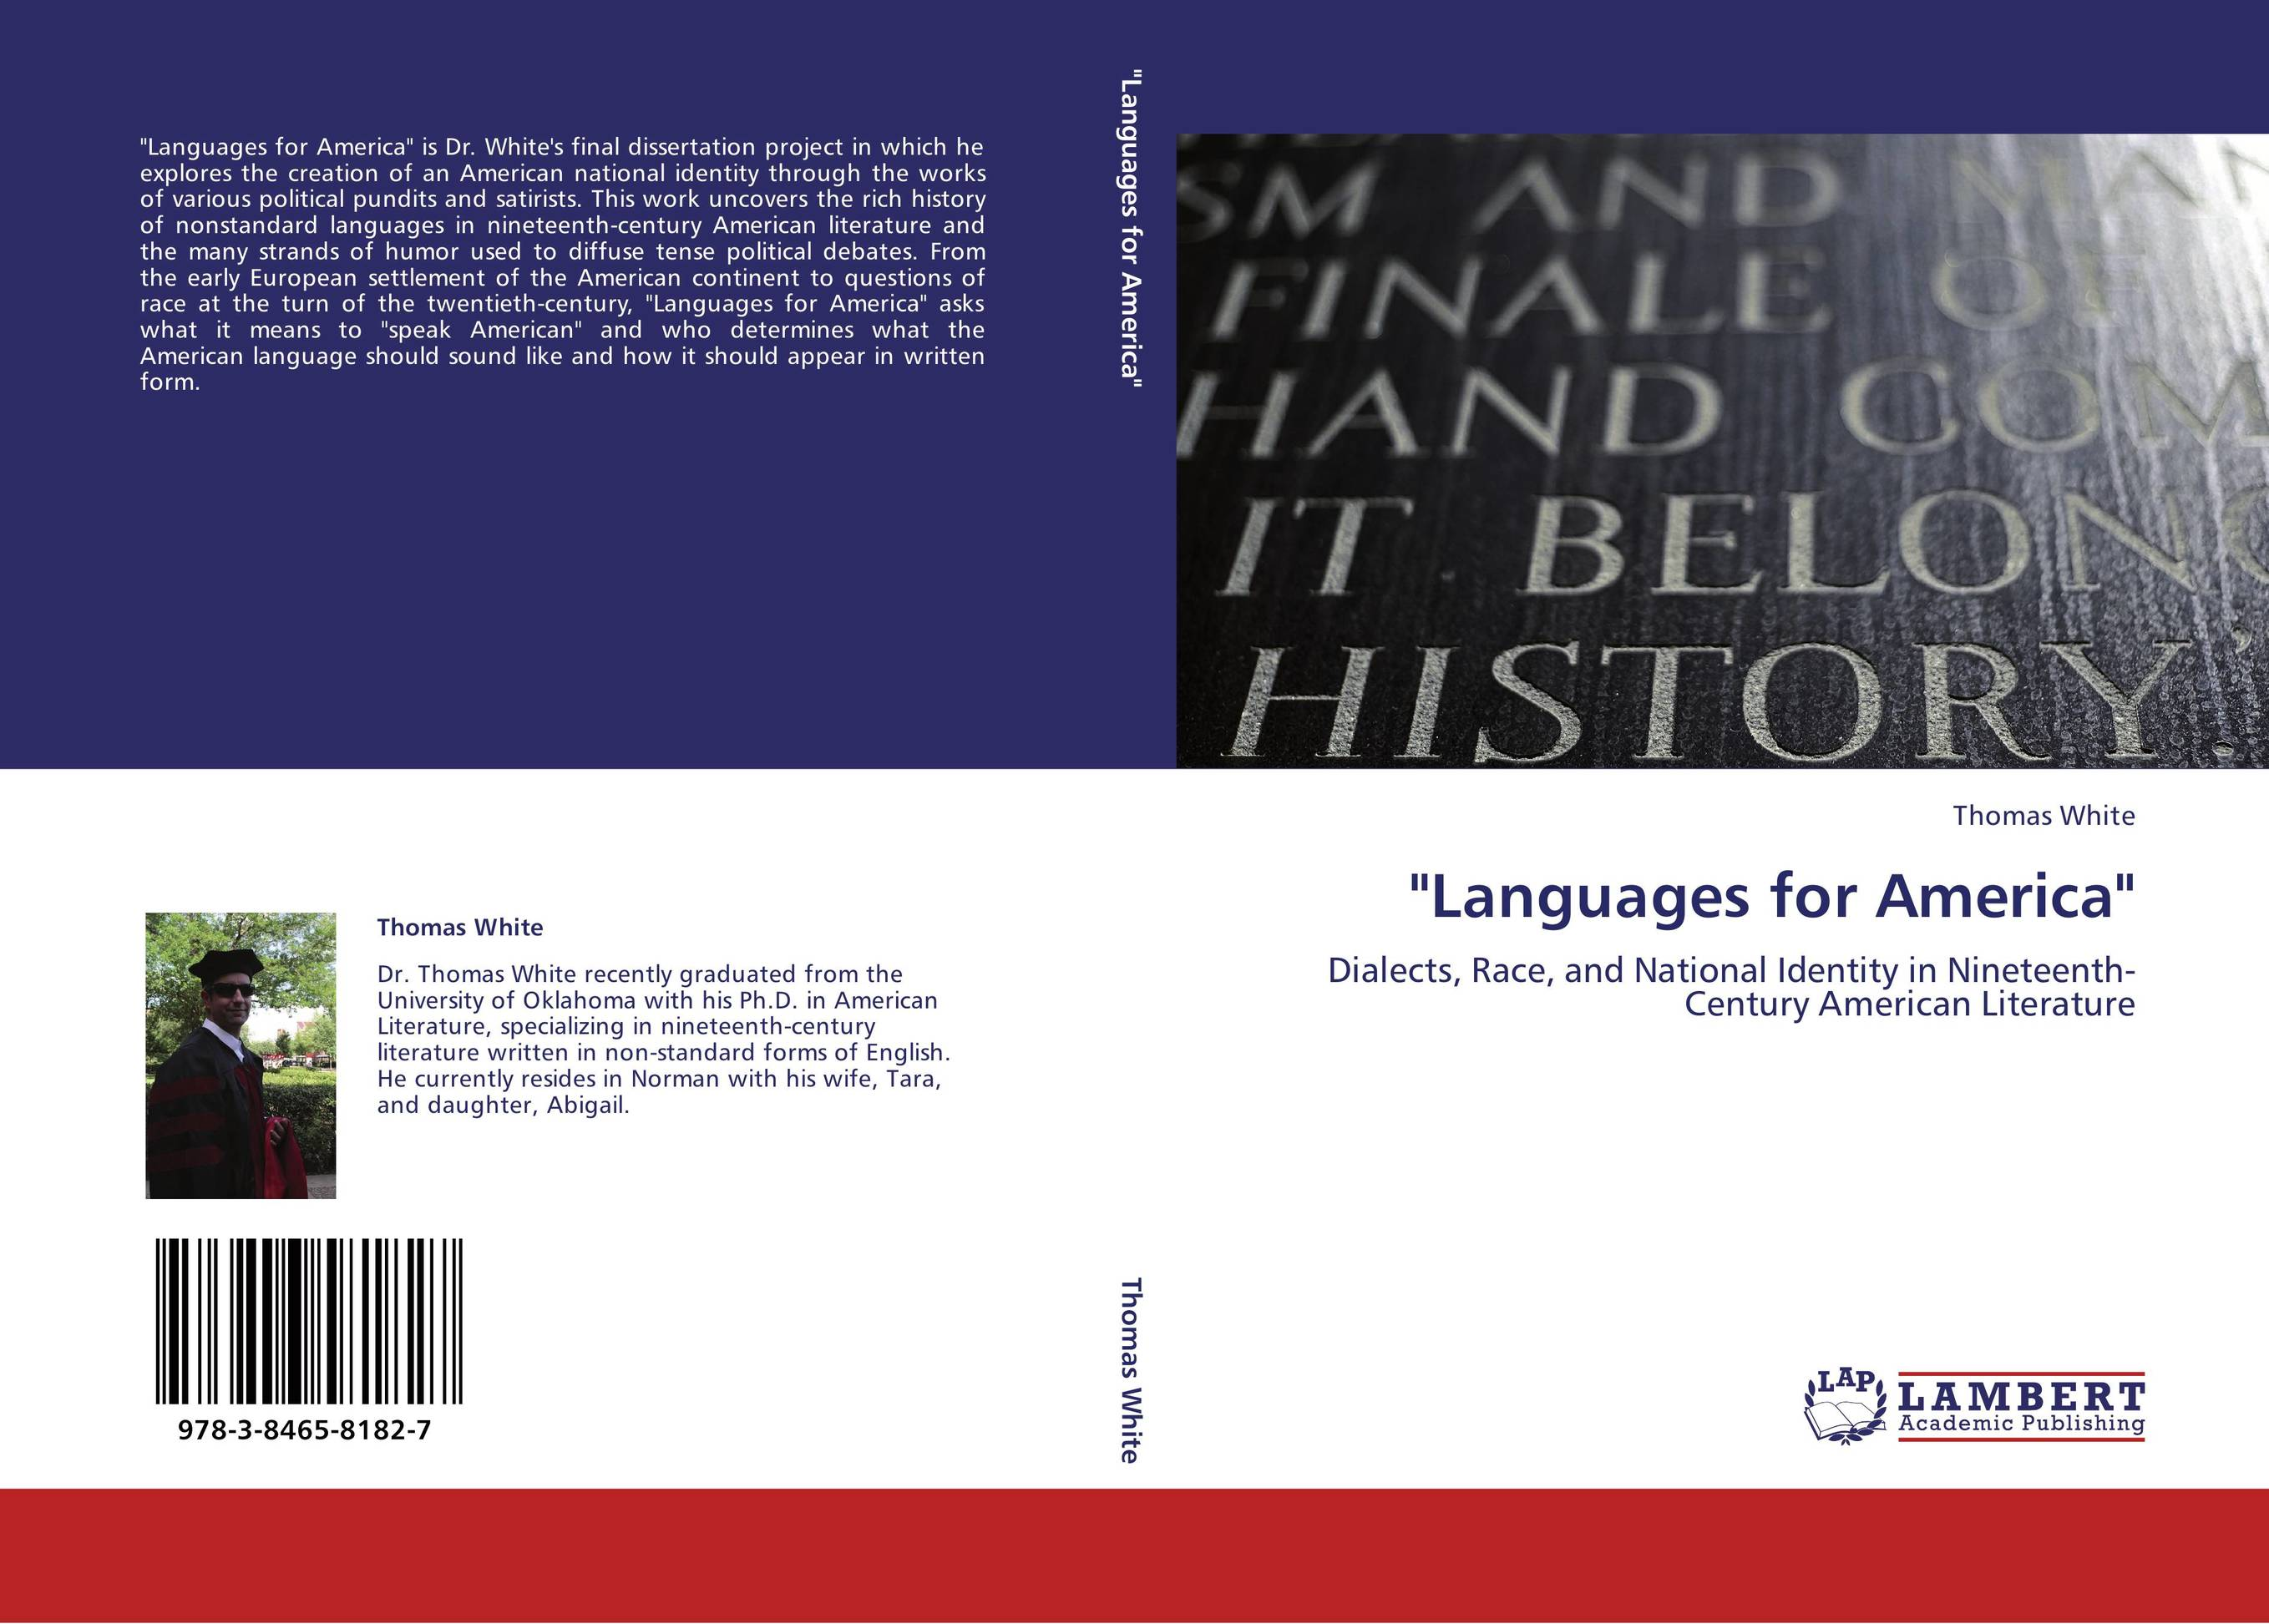 an introduction to the analysis of dialects in american literature An acoustic phonetic analysis of african american english: a comparative study of two dialects by catherine a adams thesis submitted to the department of english language and literature.